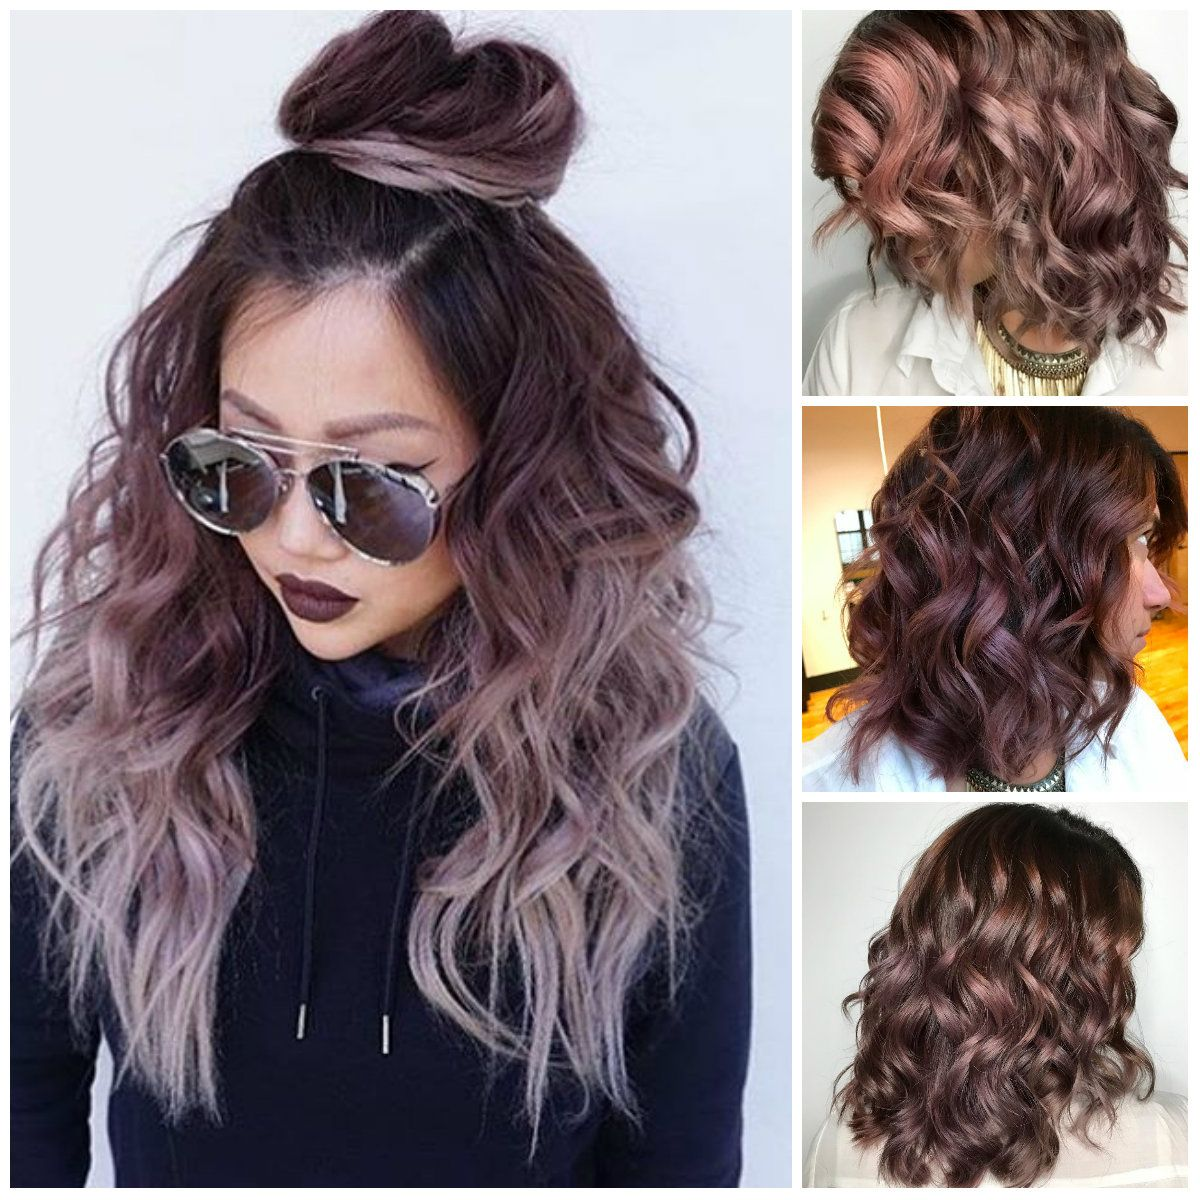 New Hair Color Ideas Amp Trends For 2017  Haircut  Pinterest  Hair Color